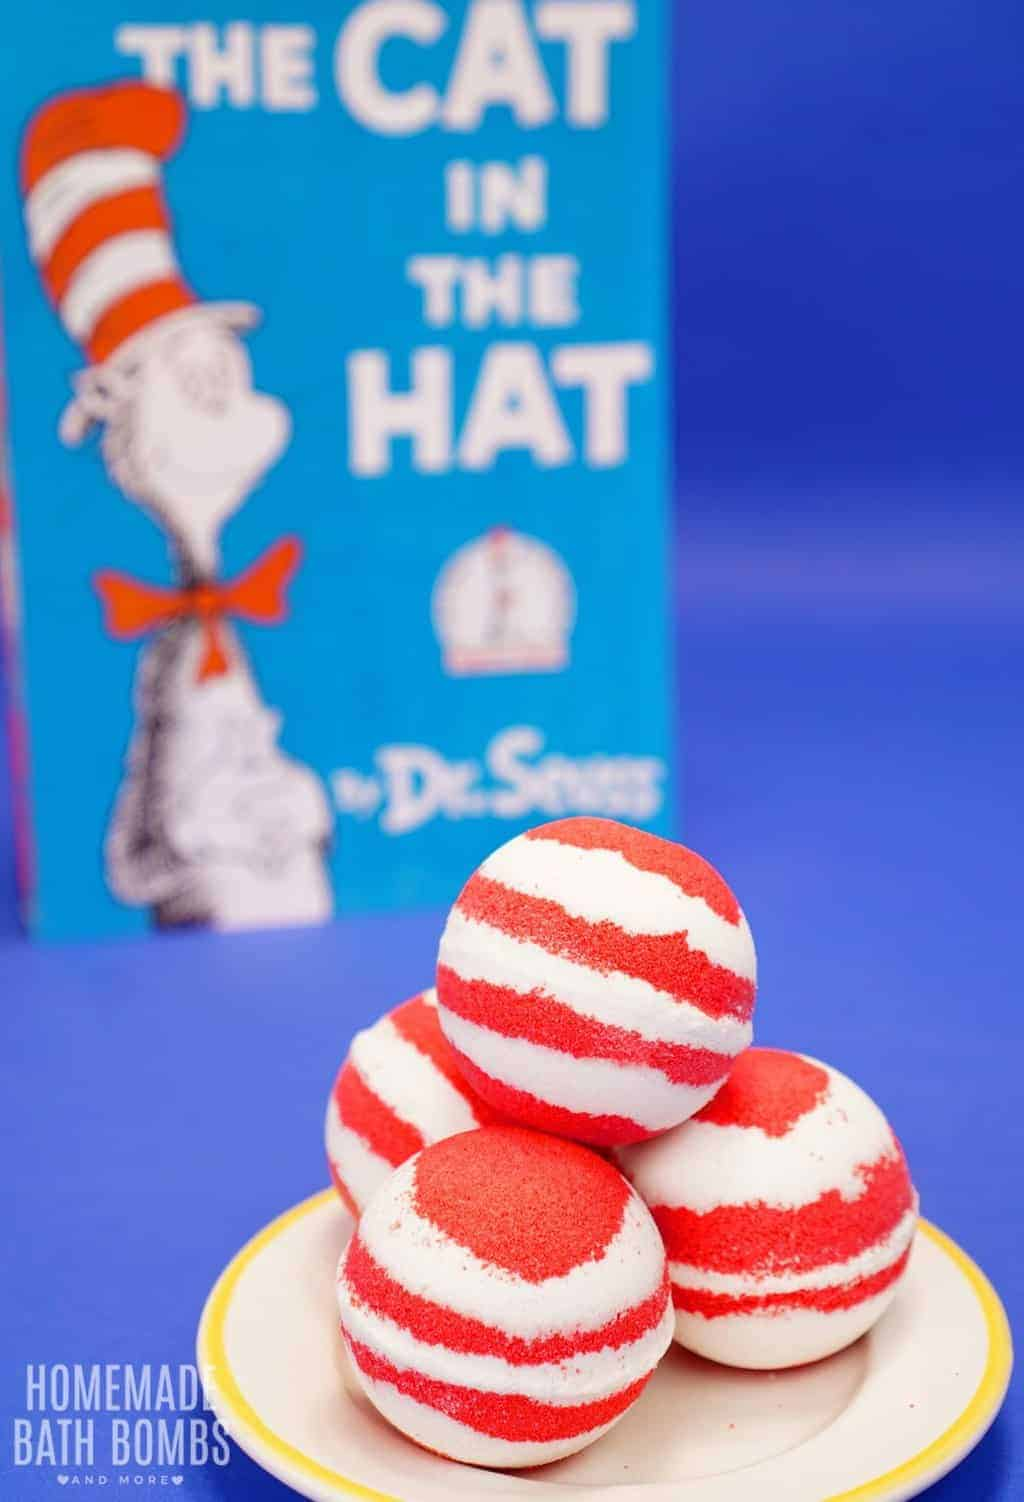 Cat-in-the-Hat-Bath-Bombs-Dr-Seuss-2